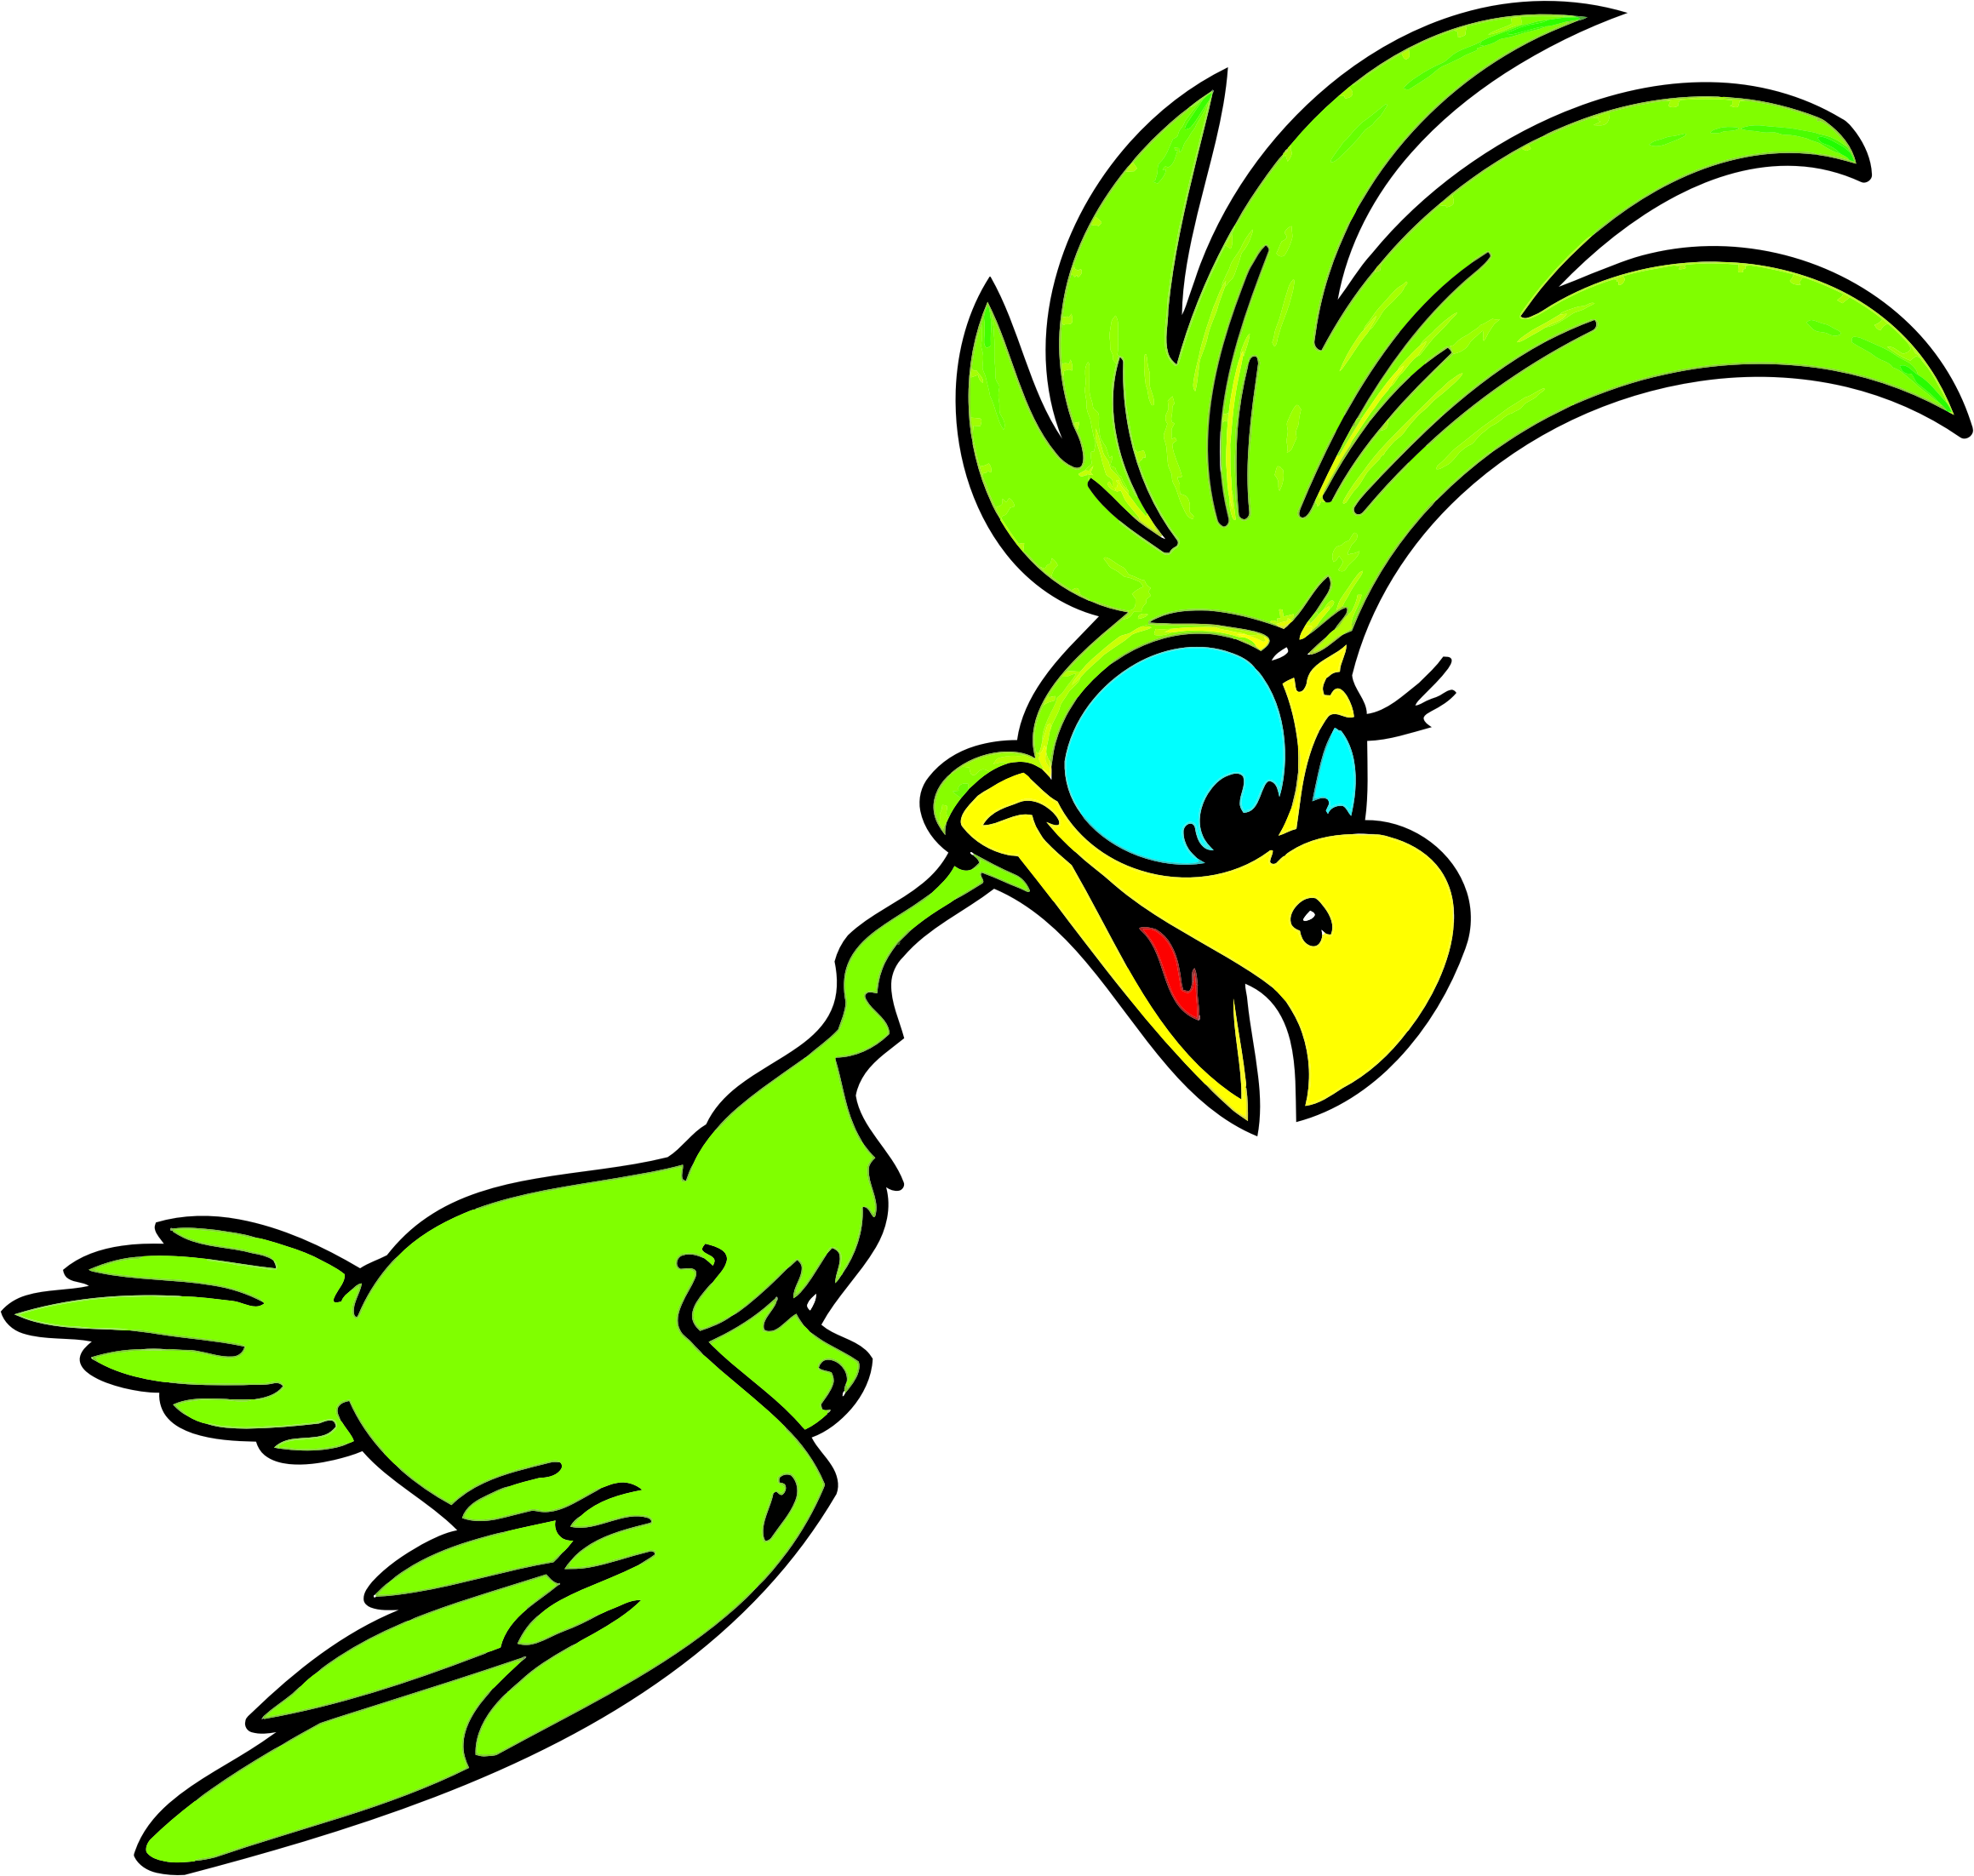 Green Cartoon Parrot by GDJ